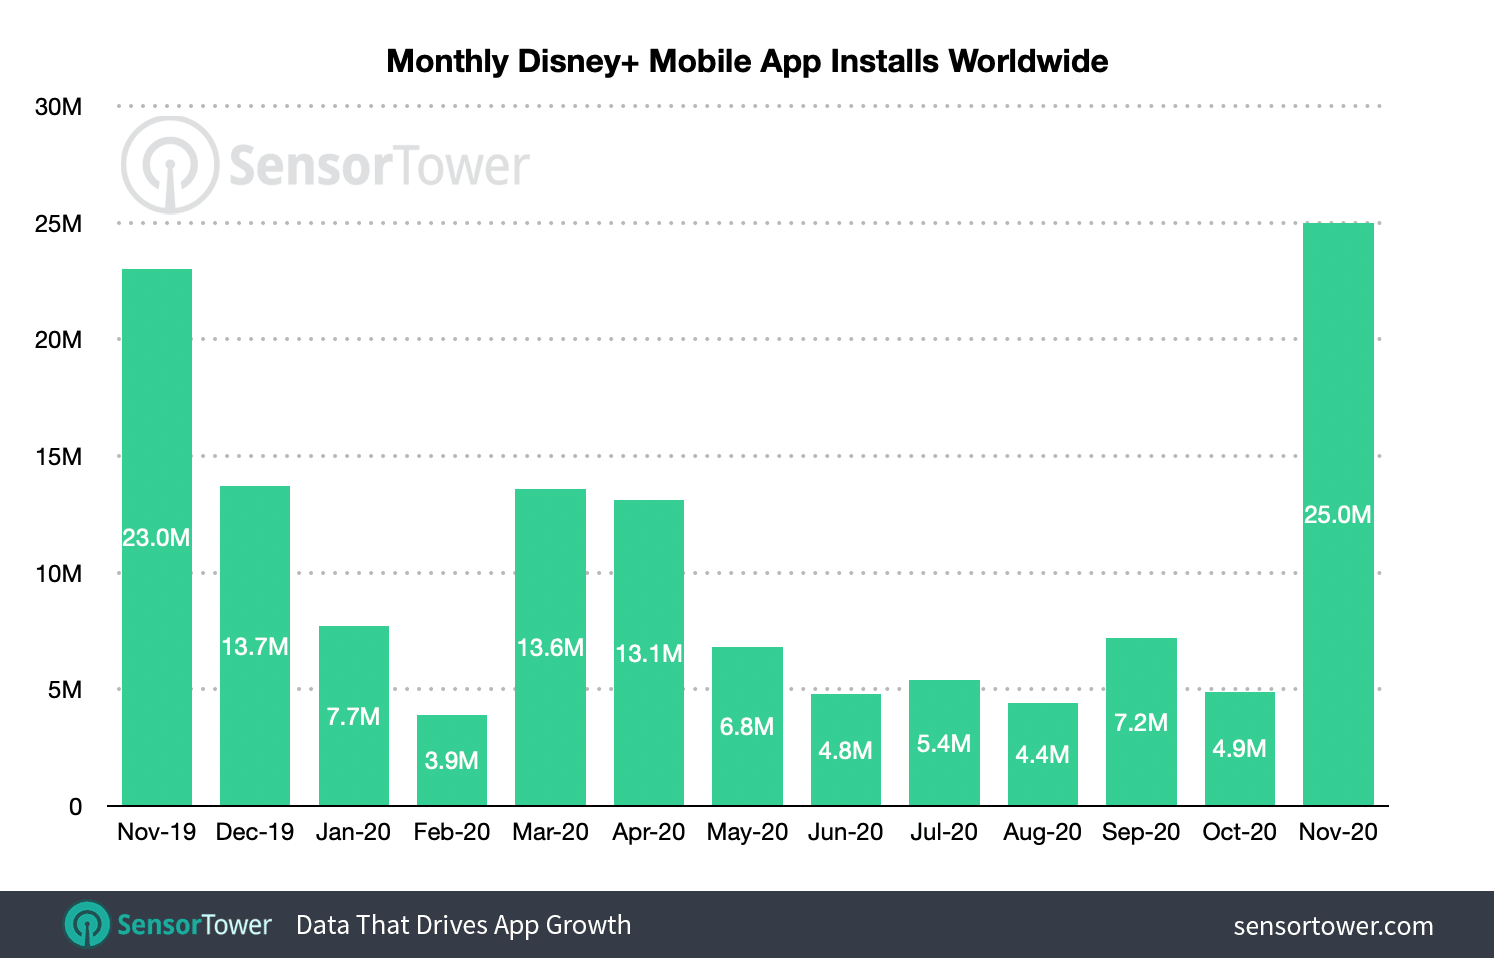 Monthly installs of Disney+ jumped nearly five times month-over-month in November